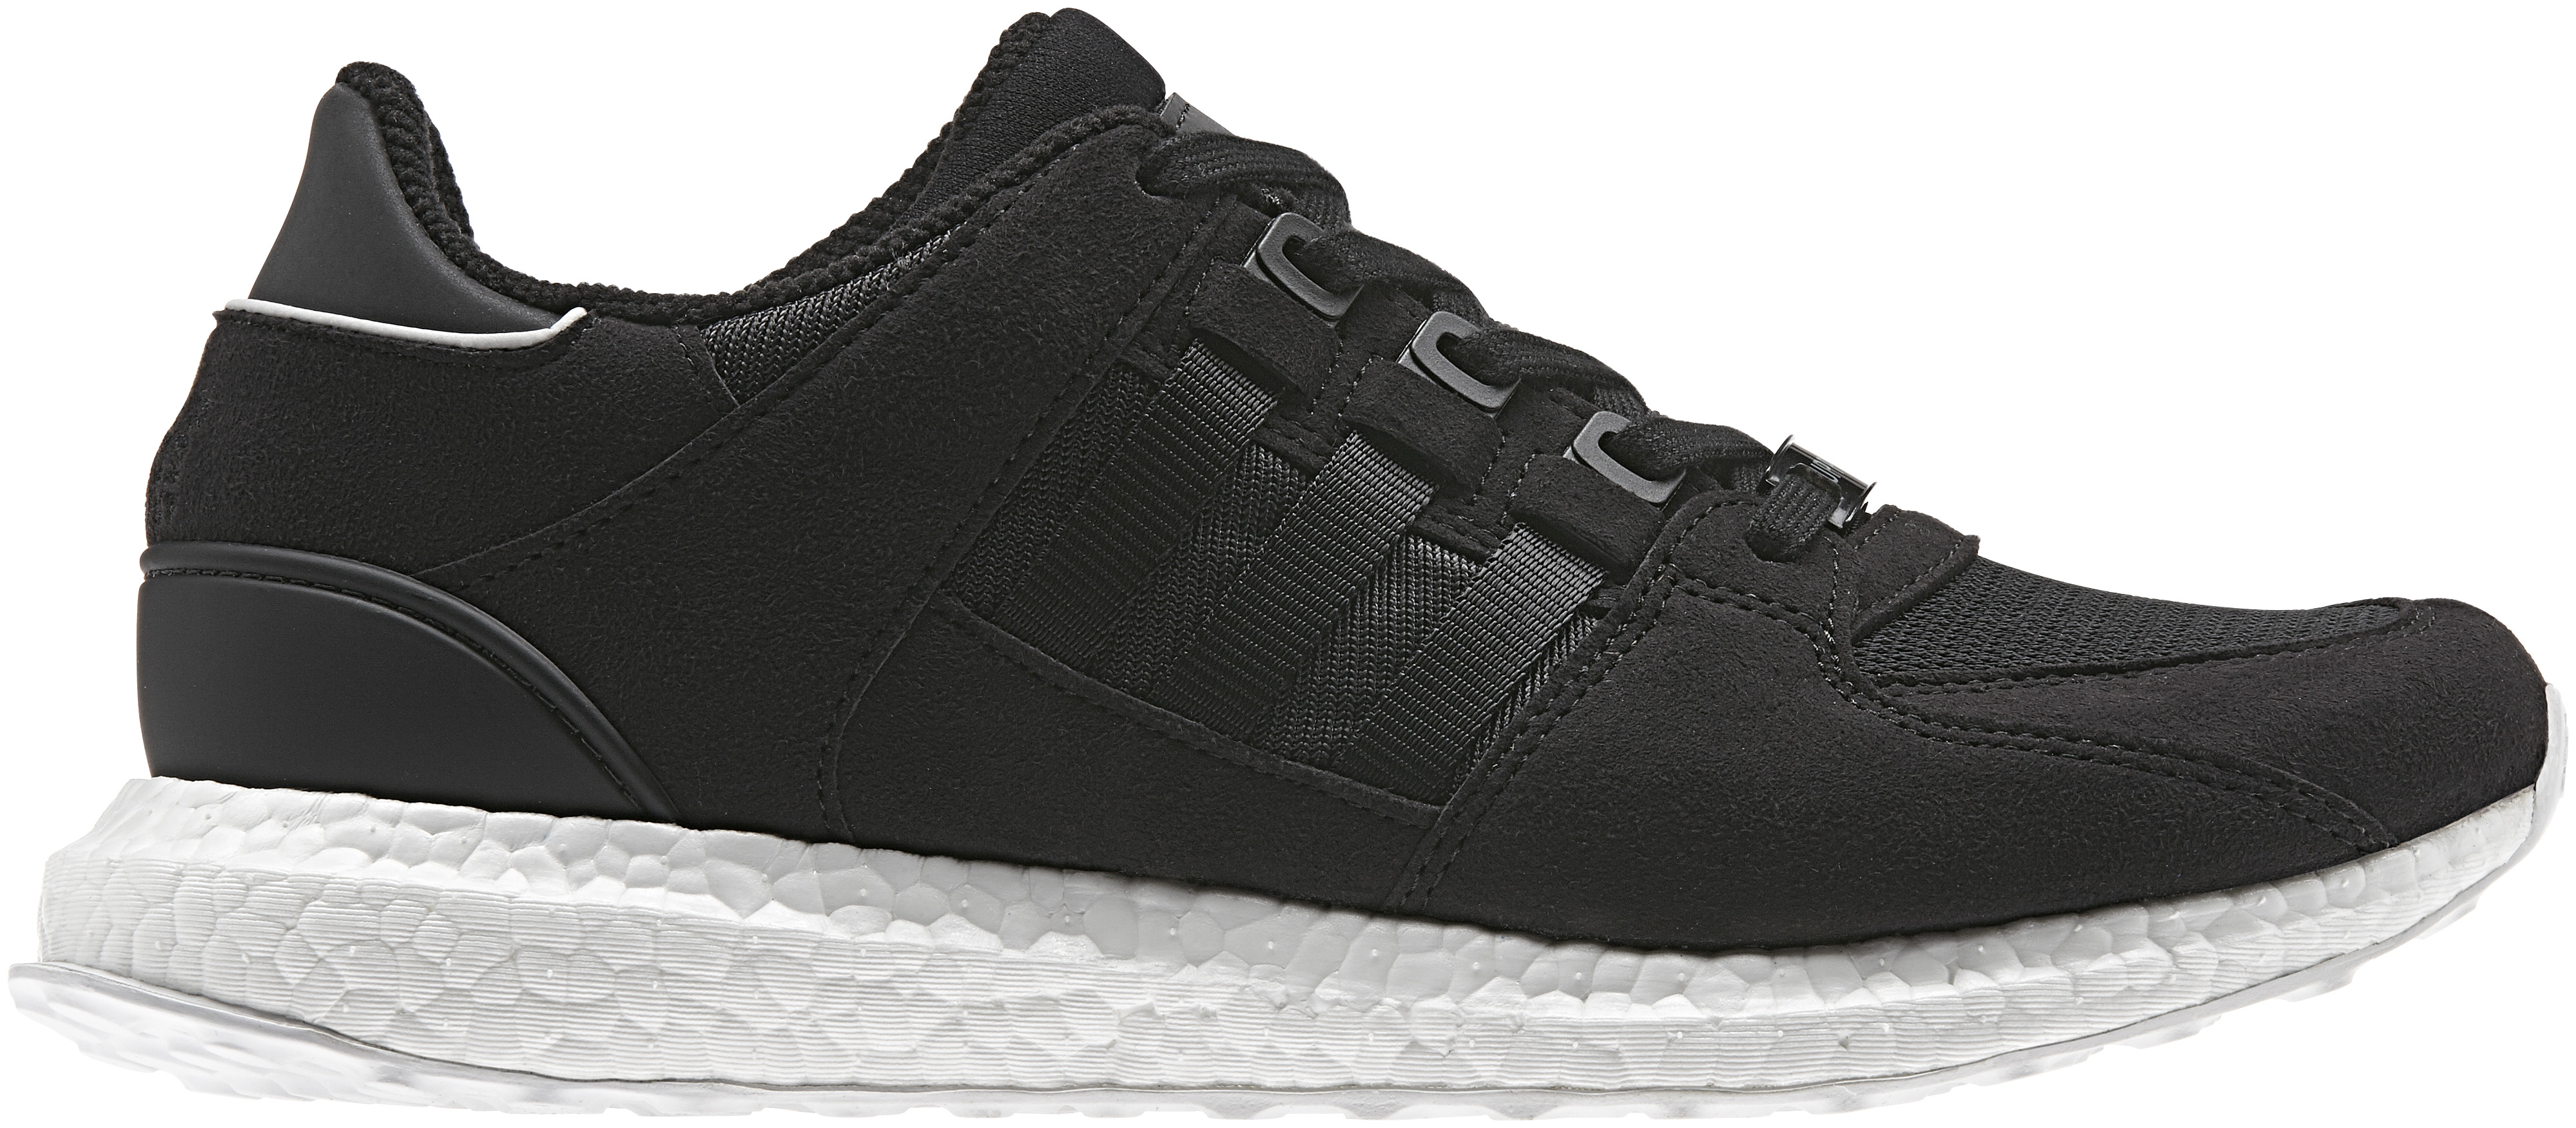 adidas EQT Support RF (Turbo/Core Black Footwear White) VILLA